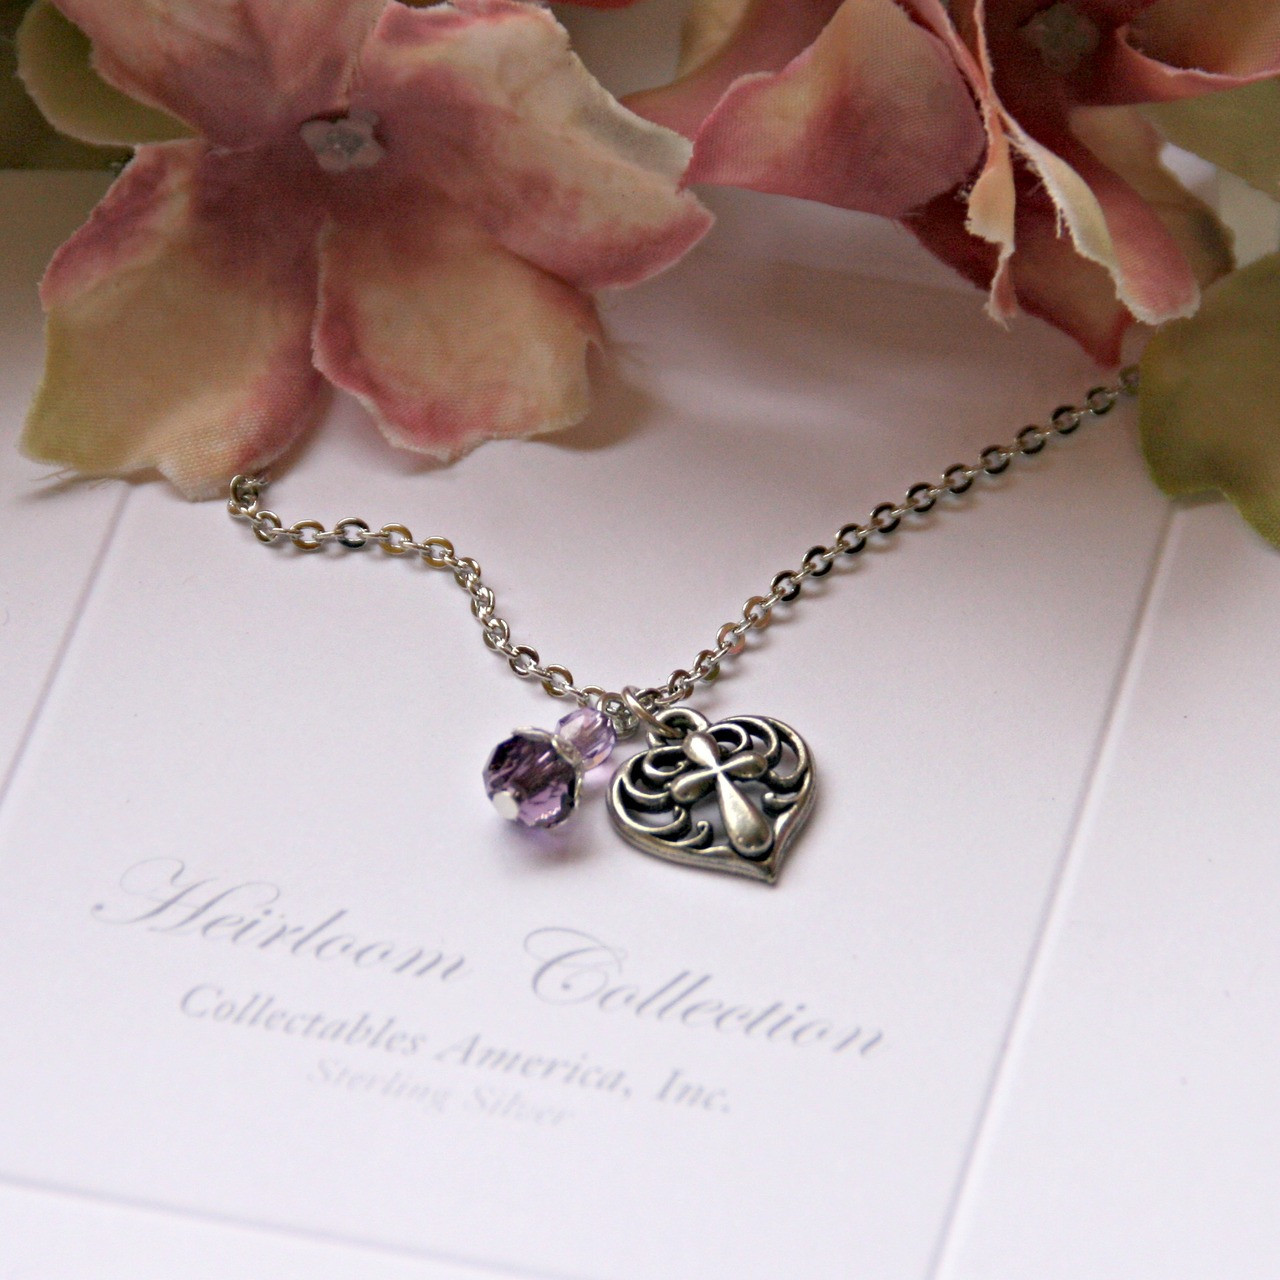 GG-36 Amazing Grace Heart with Cross and Crystal Charm Necklace